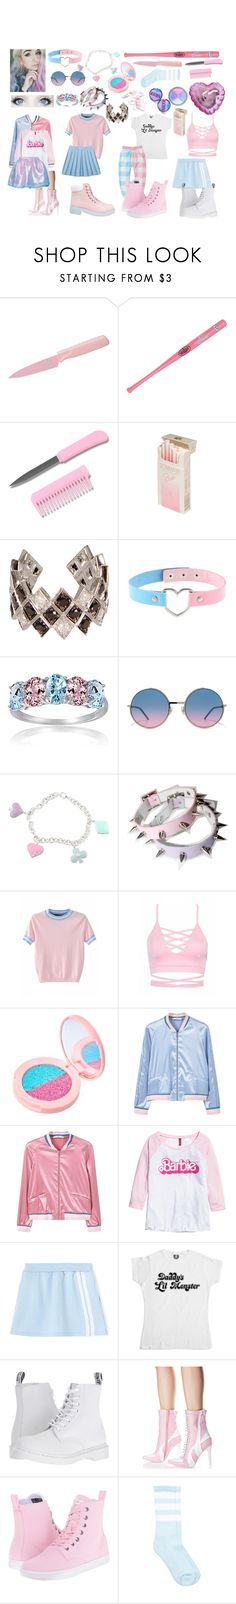 """""""Dc: Pastel Harley Quinn"""" by cartoonvillian ❤ liked on Polyvore featuring Kuhn Rikon, Coopersburg, Elise Dray, Glitzy Rocks, Marc Jacobs, Sterling Essentials, MANGO, H&M, Dr. Martens and Current Mood"""